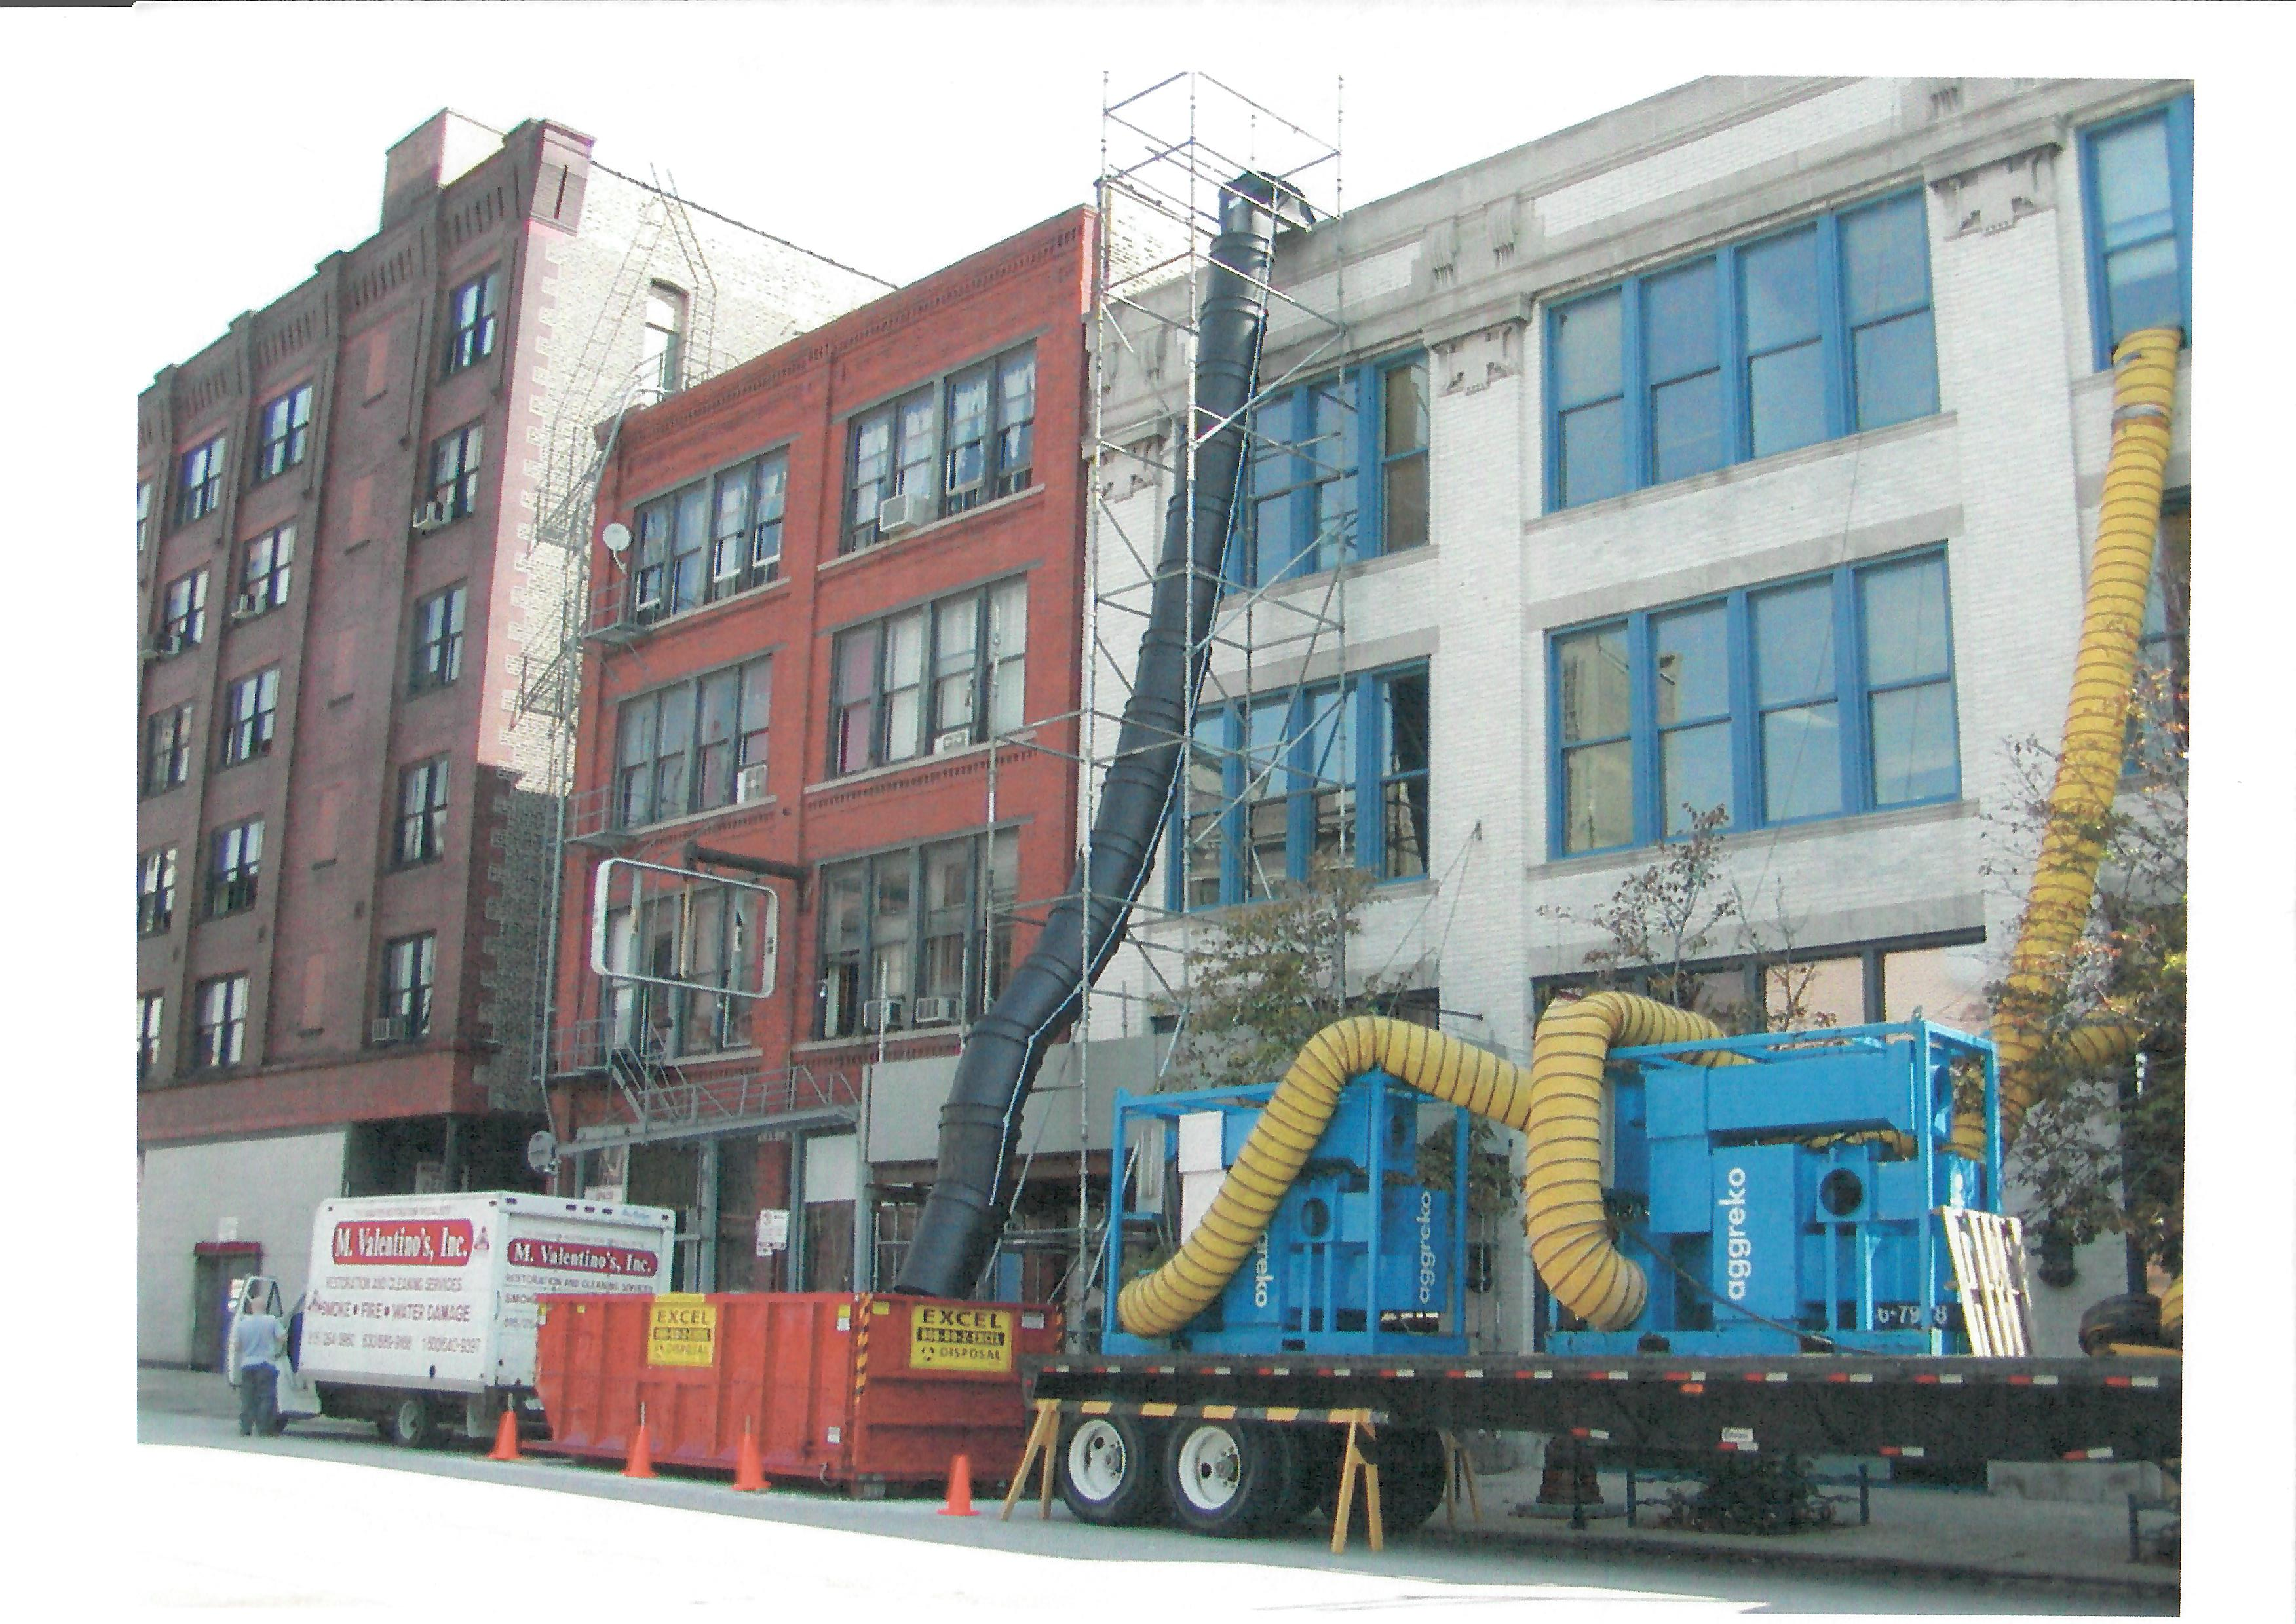 debris chute scaffolding system pictured in use for an older three-story building